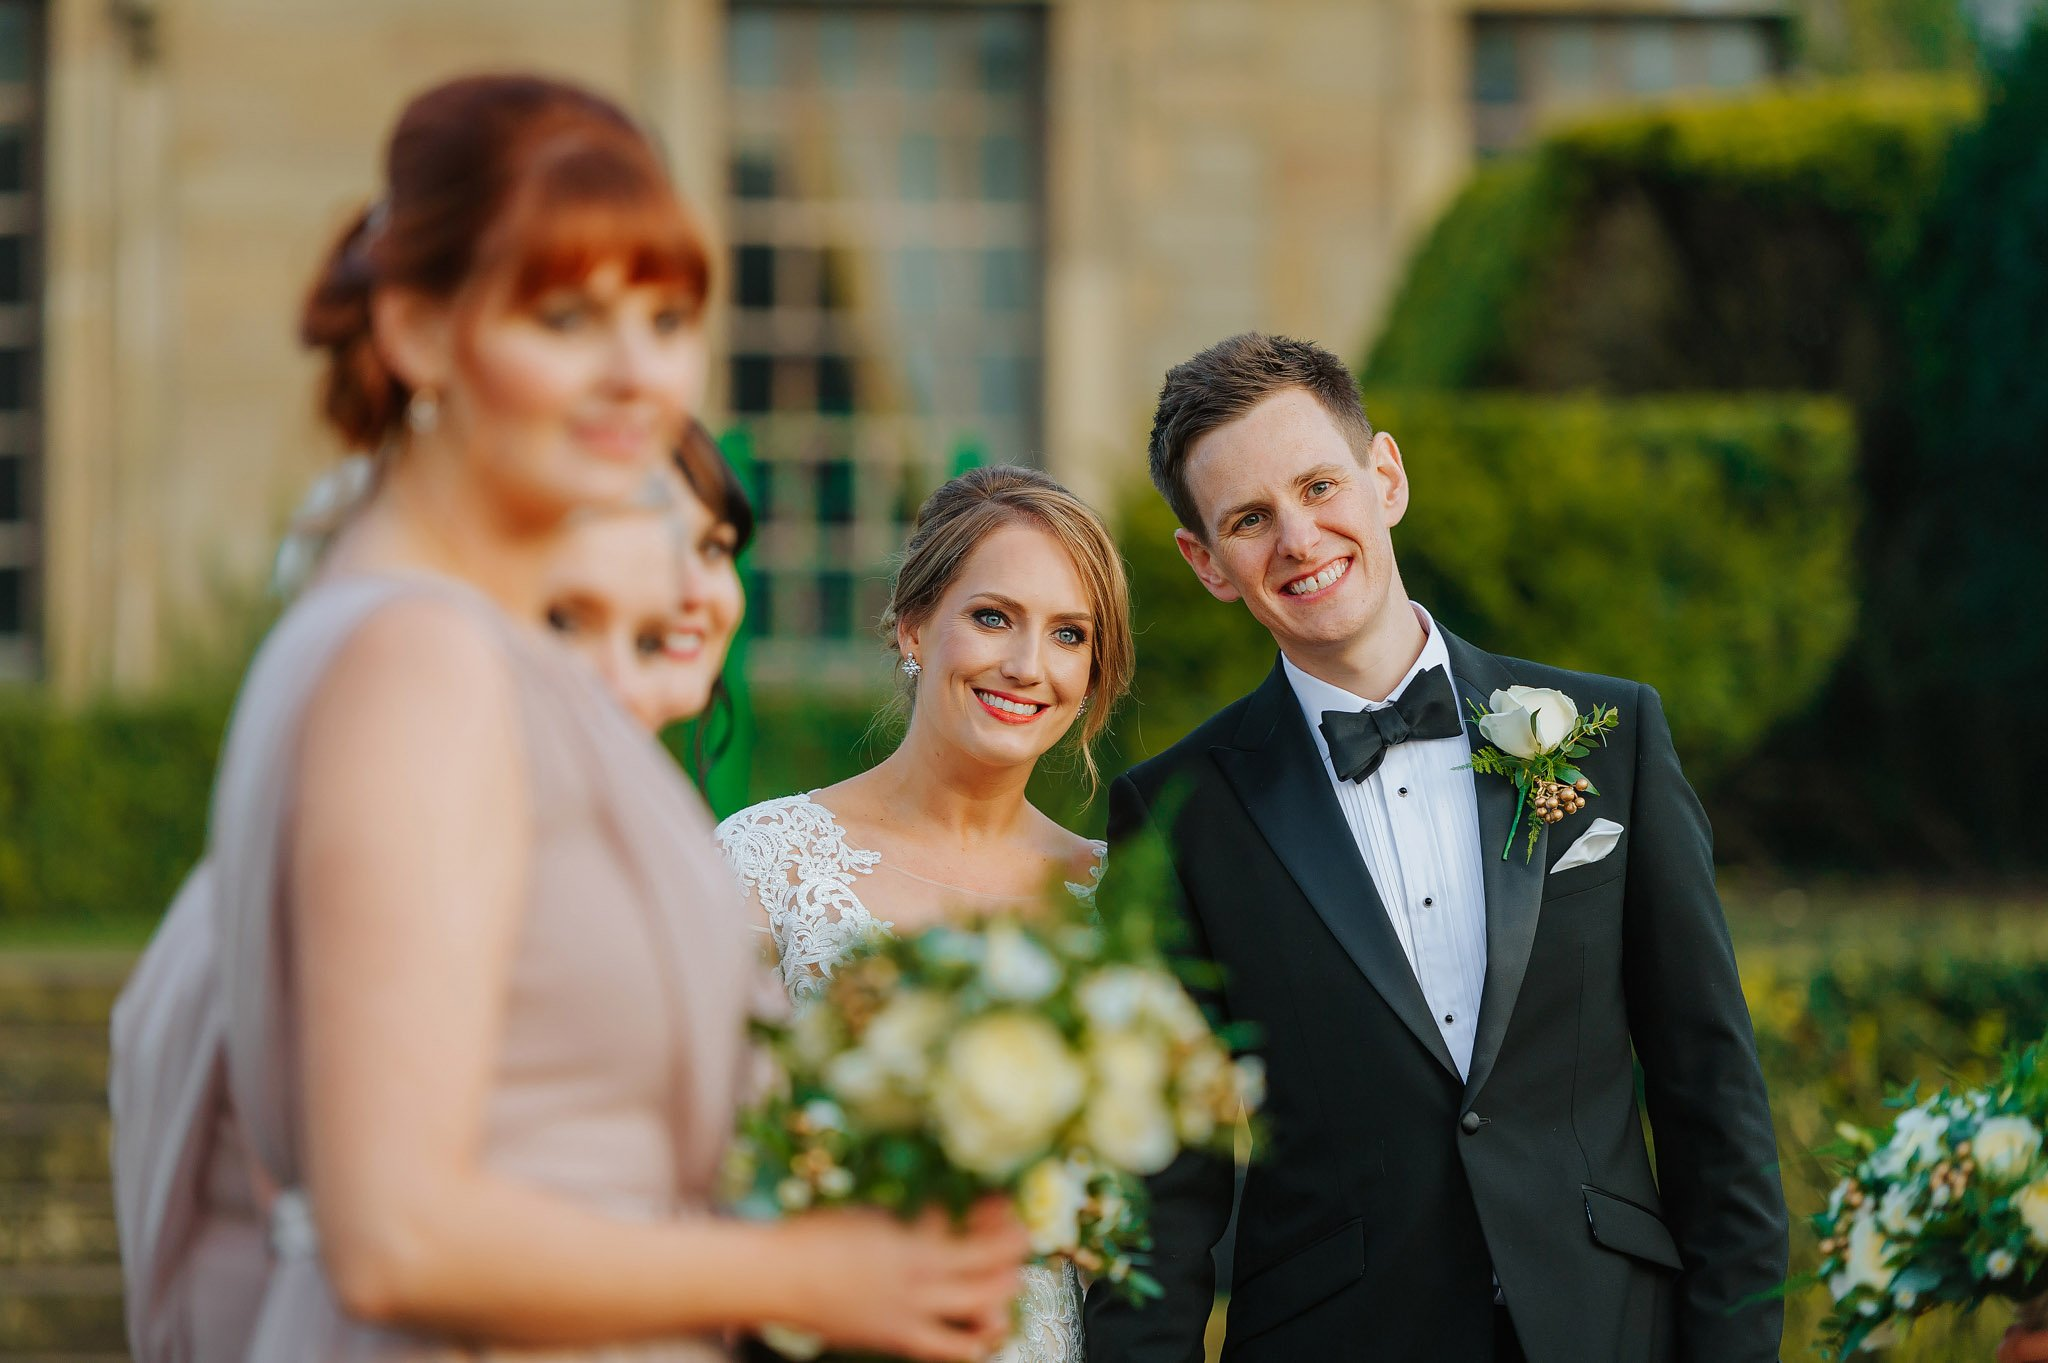 Coombe Abbey wedding in Coventry, Warwickshire - Sam + Matt 35